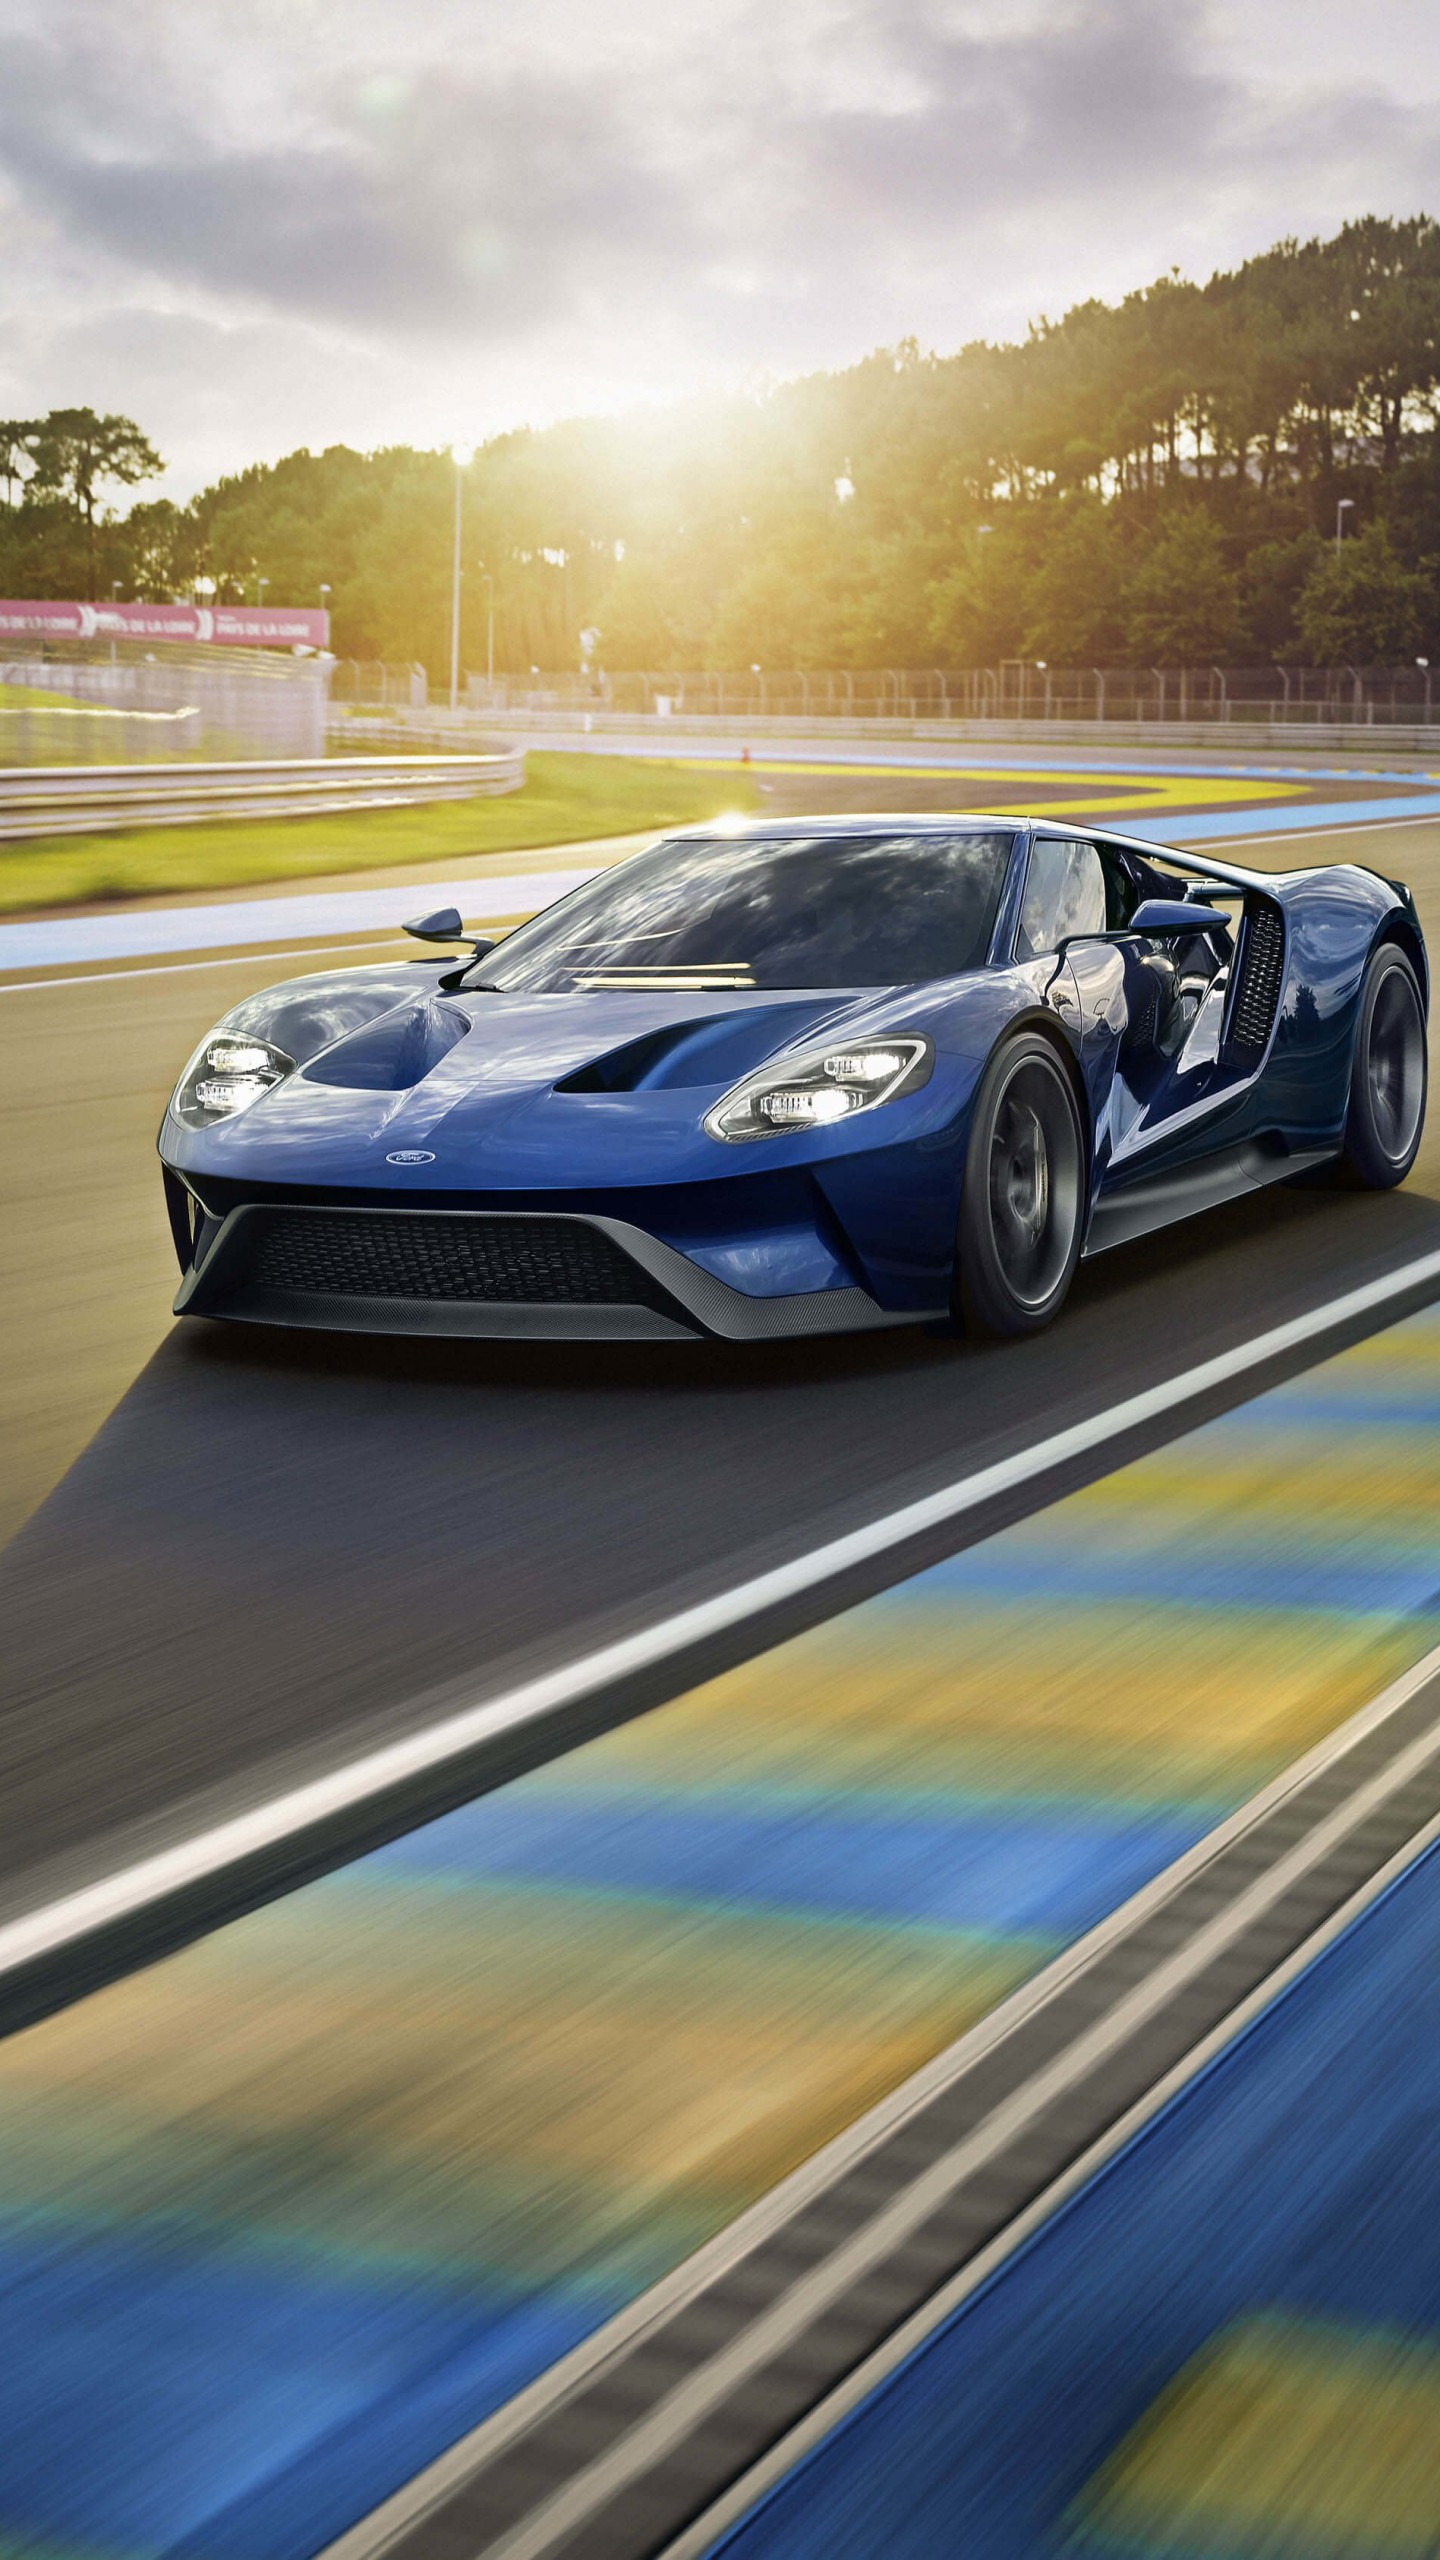 Ford GT Supercar Wallpaper for SAMSUNG Galaxy Note 4